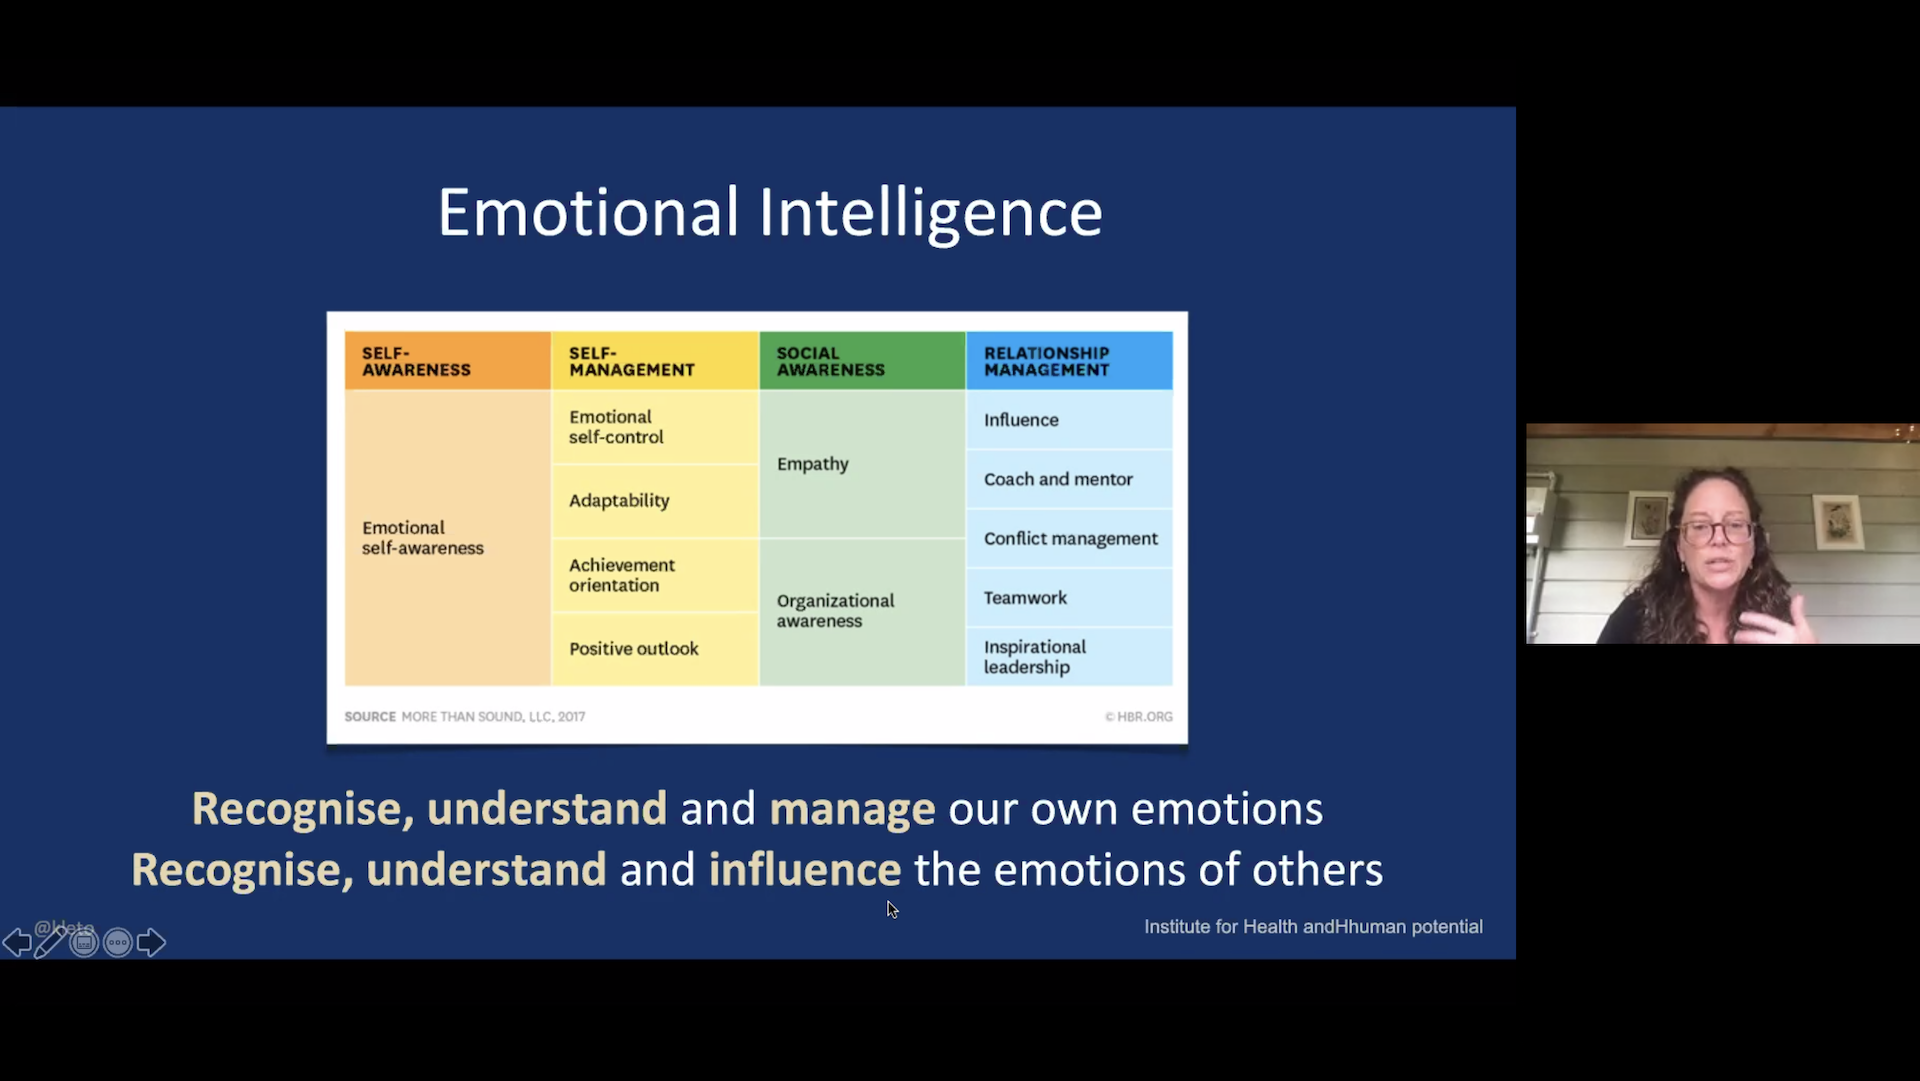 A chart of emotional intelligence characteristics on the left. Kate Leto talking on the right.